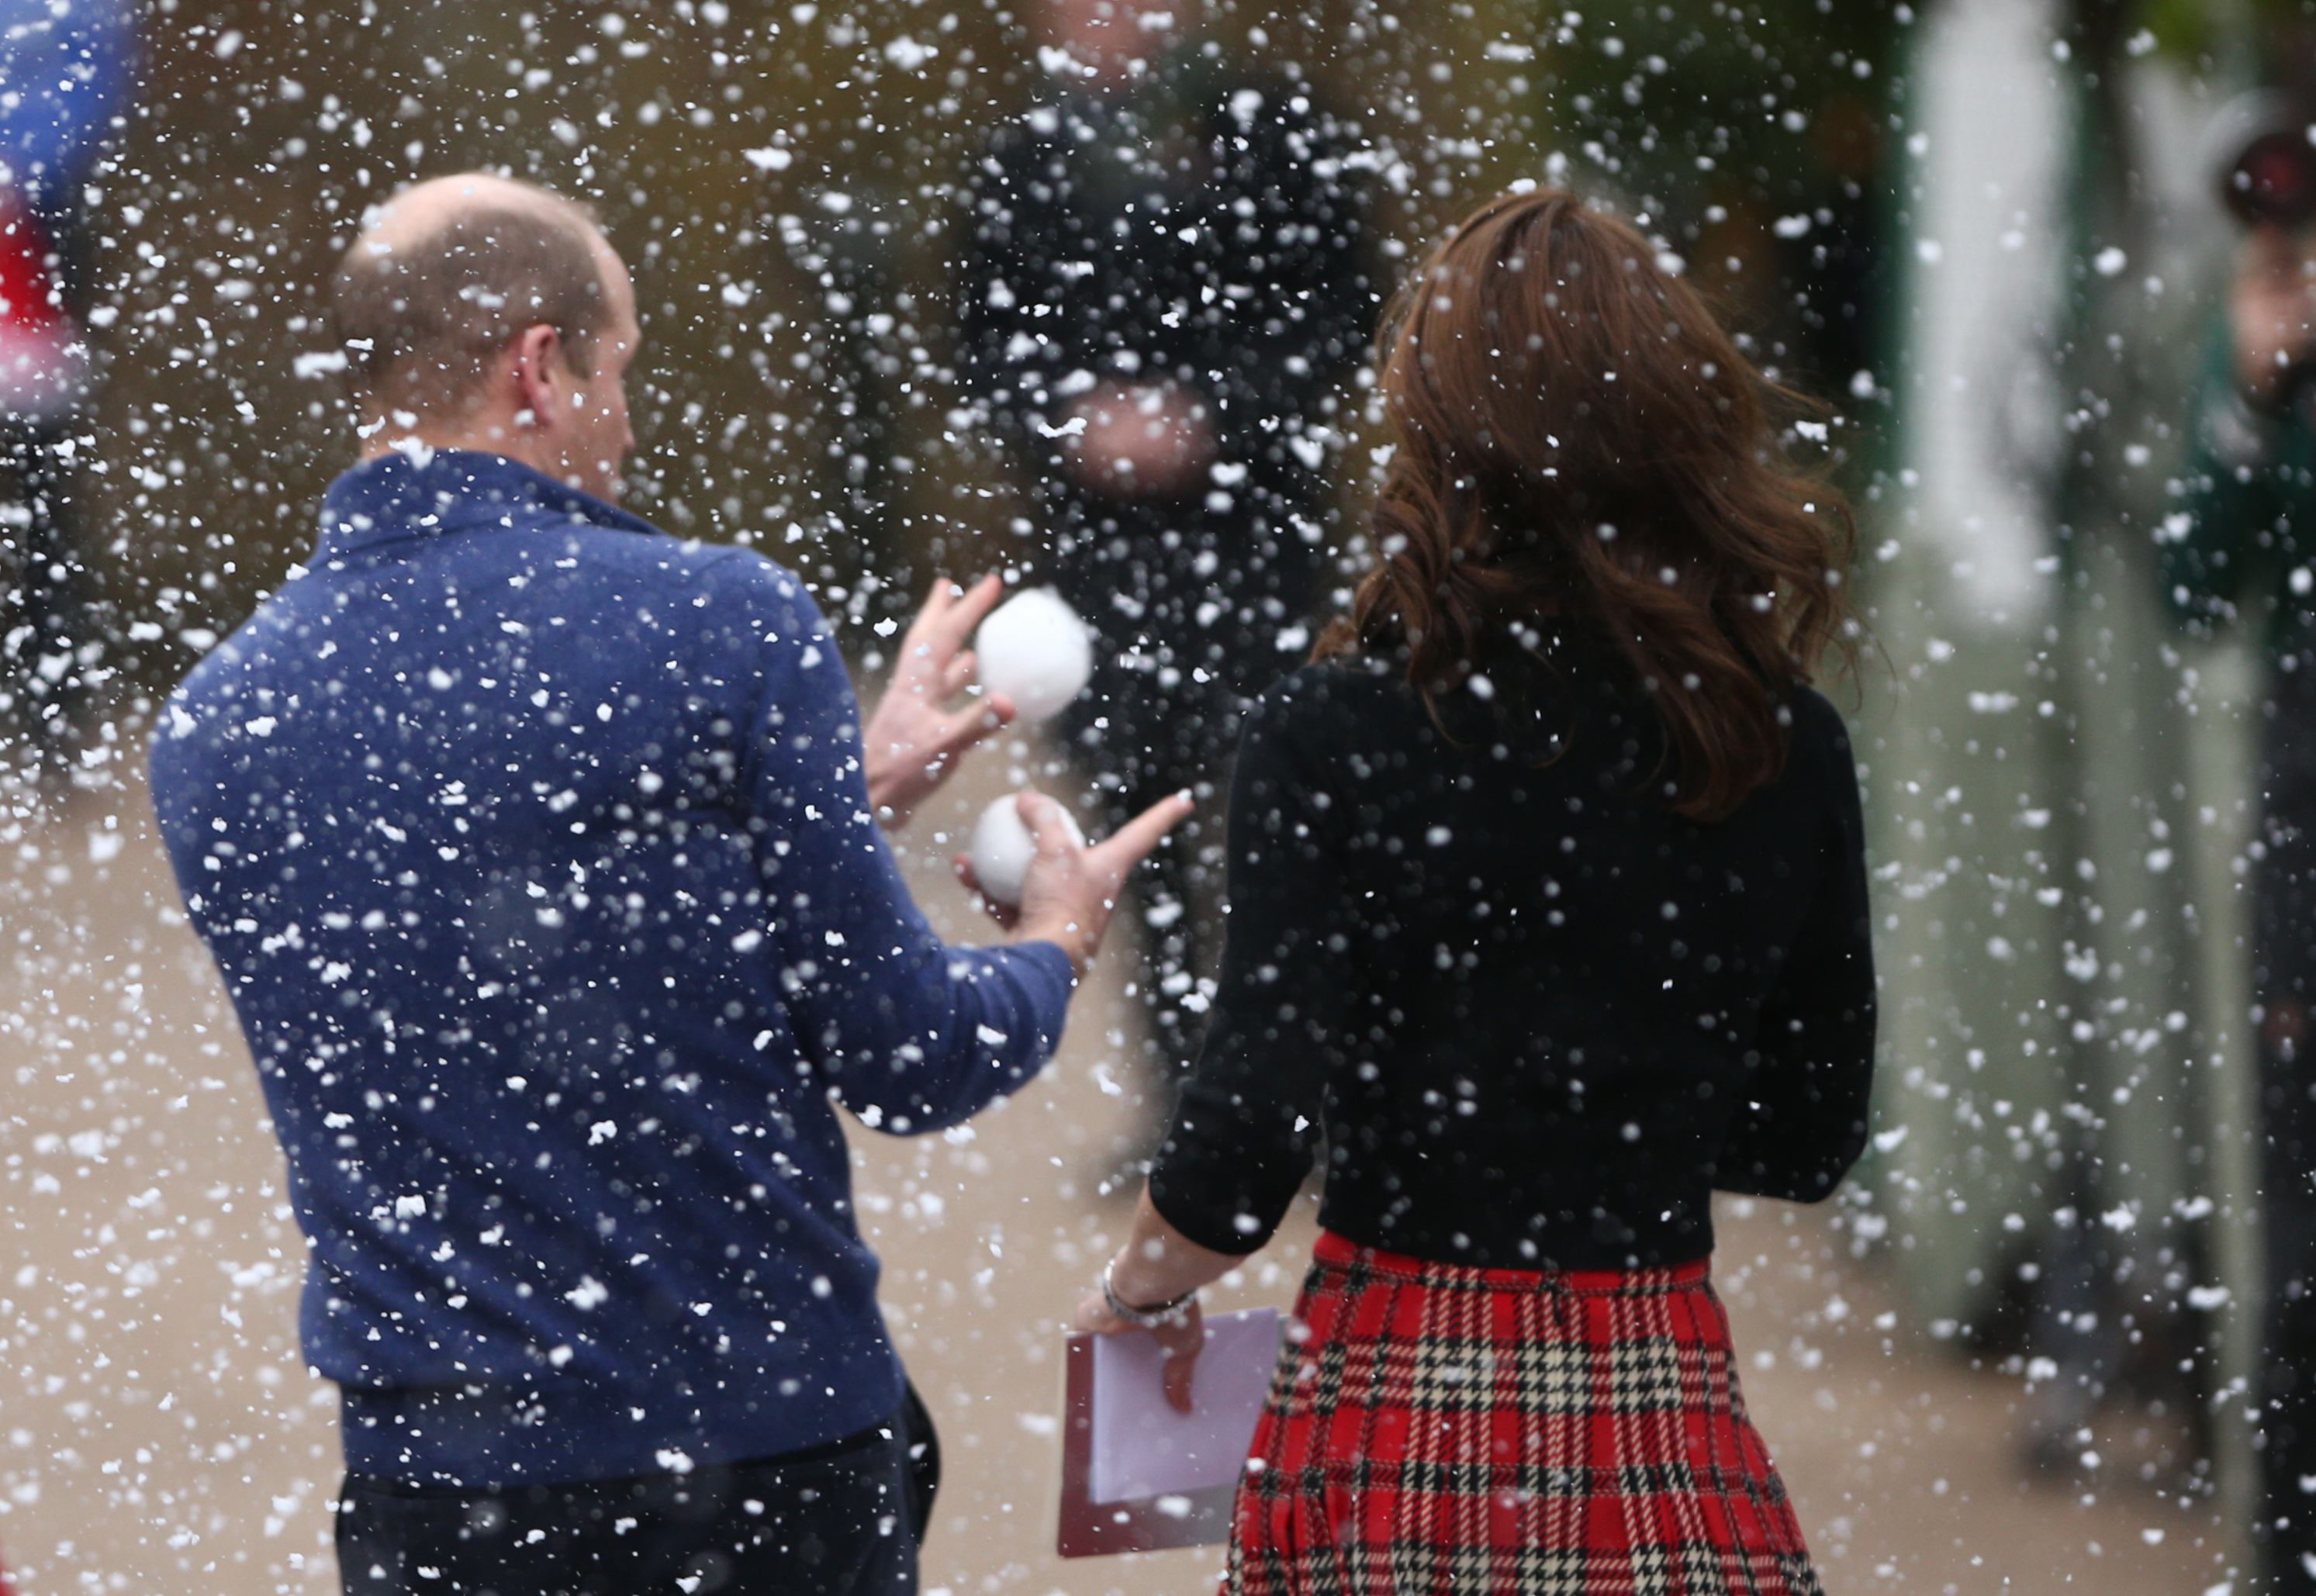 The Duke and Duchess of Cambridge Host a Christmas Party for Families of Deployed Military Personnel